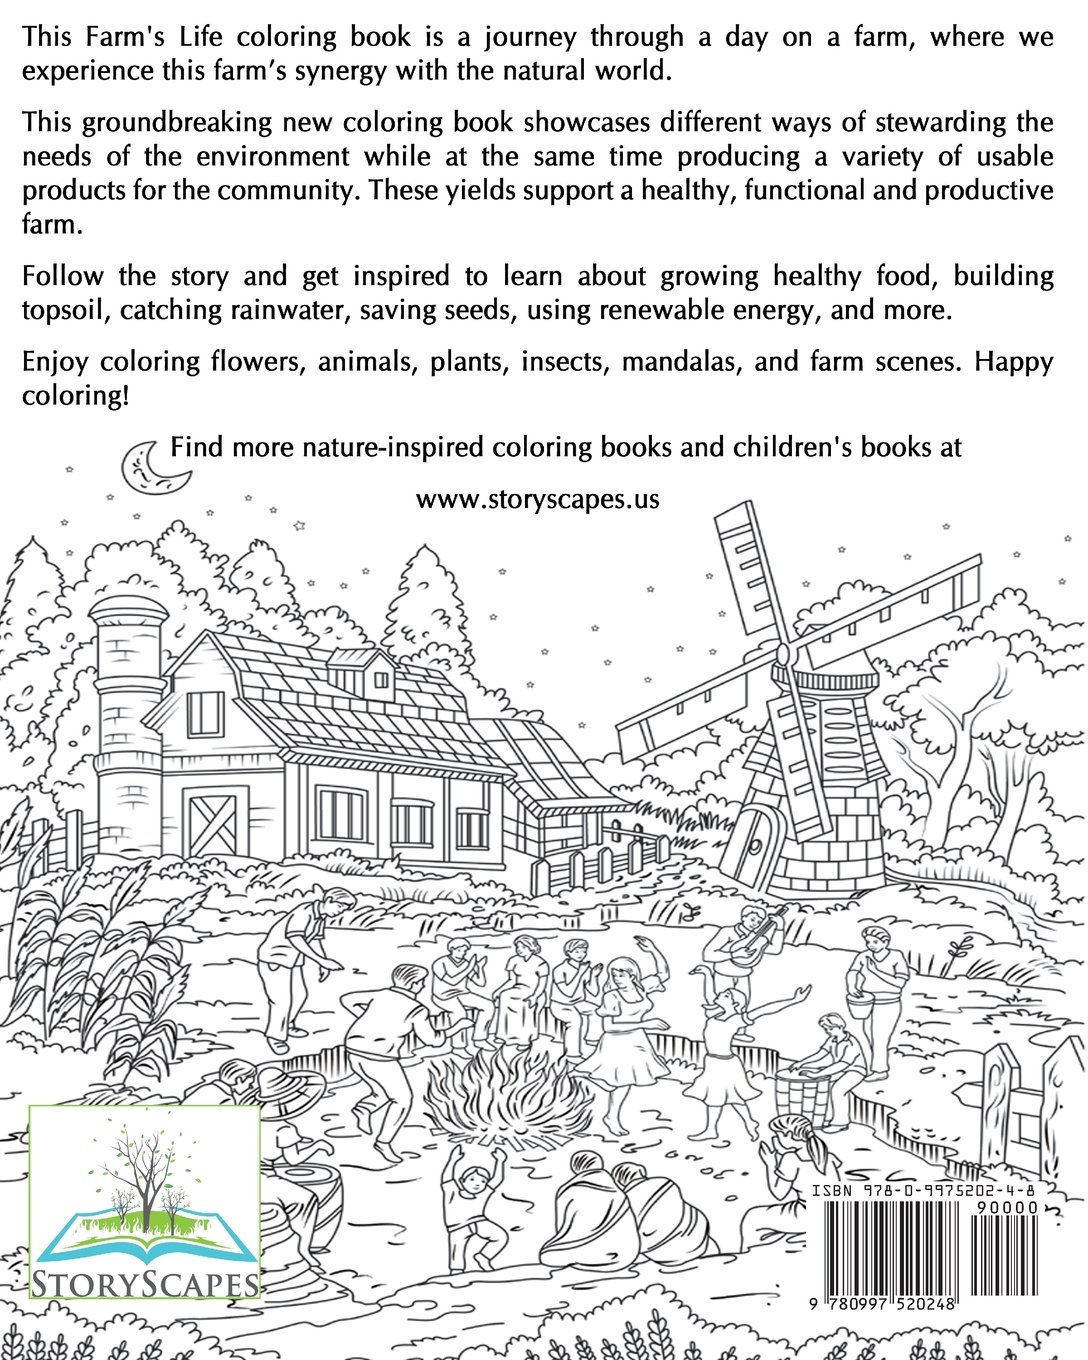 Coloring pictures of nature - Amazon Com This Farm S Life Adult Coloring Book Farming With Nature Animals Organic Gardening Storyscapes Book 9780997520248 Erik Ohlsen Books